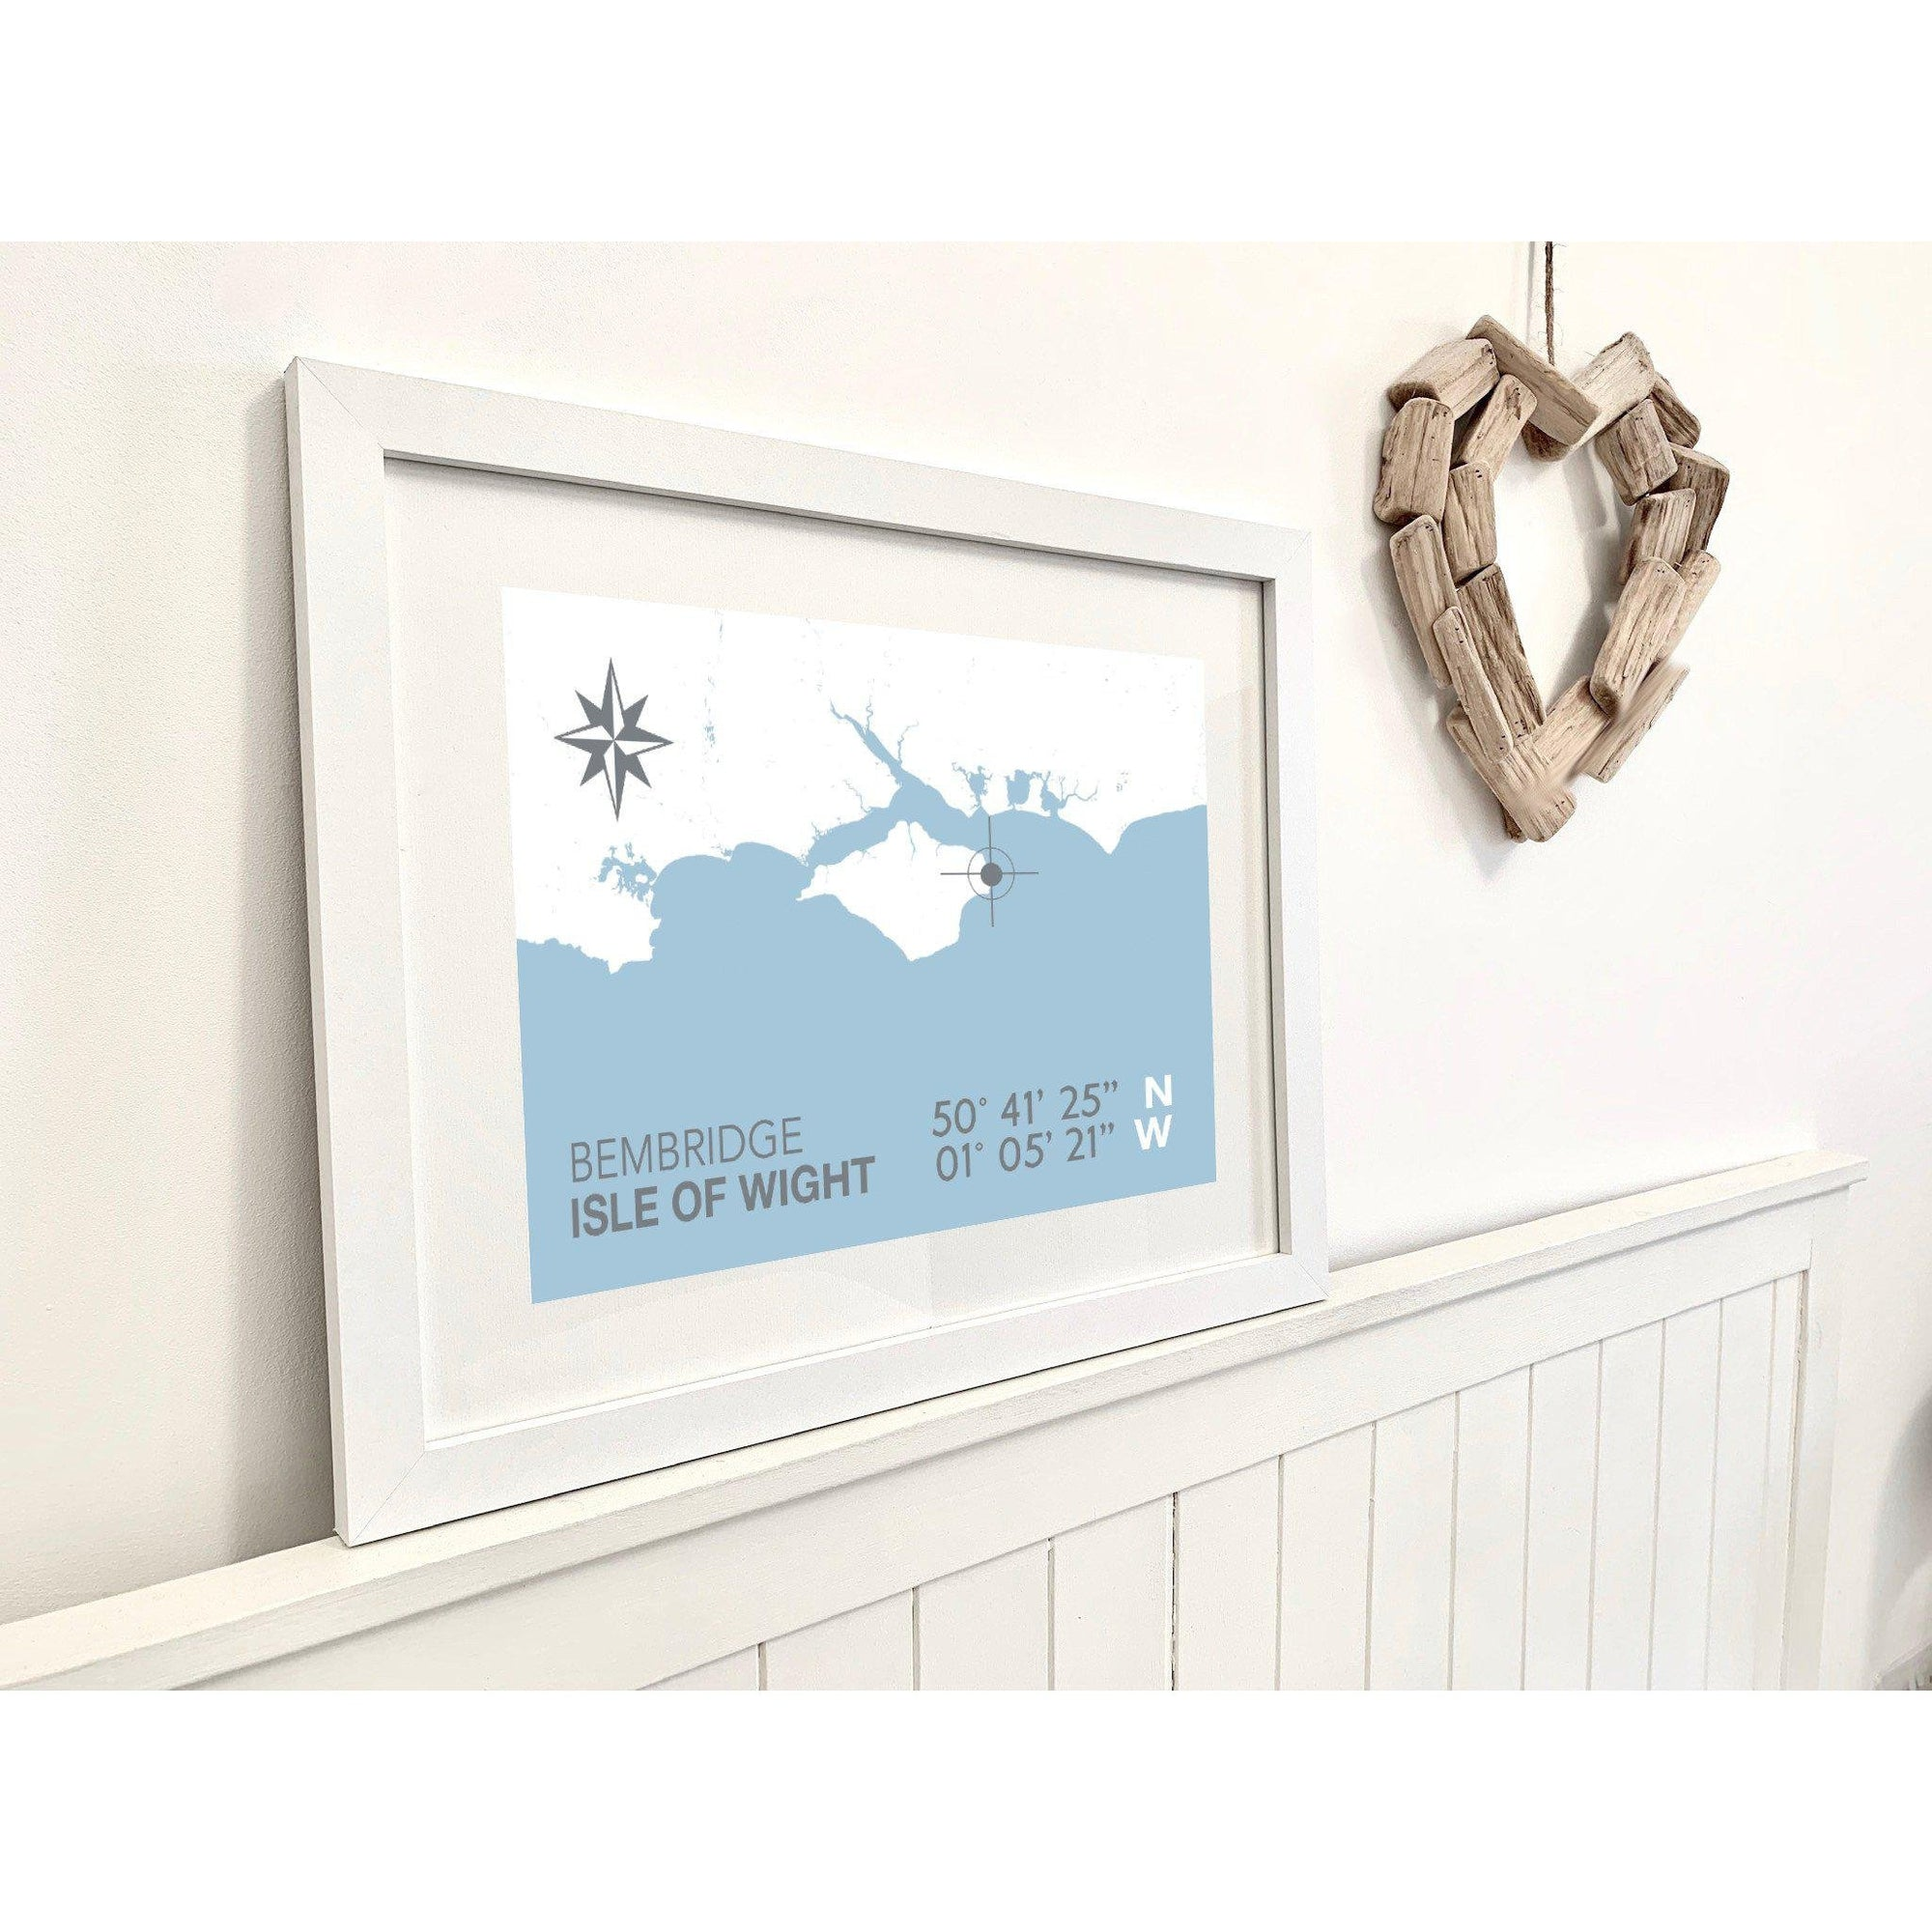 Bembridge Map Travel Print- Coastal Wall Art /Poster-SeaKisses